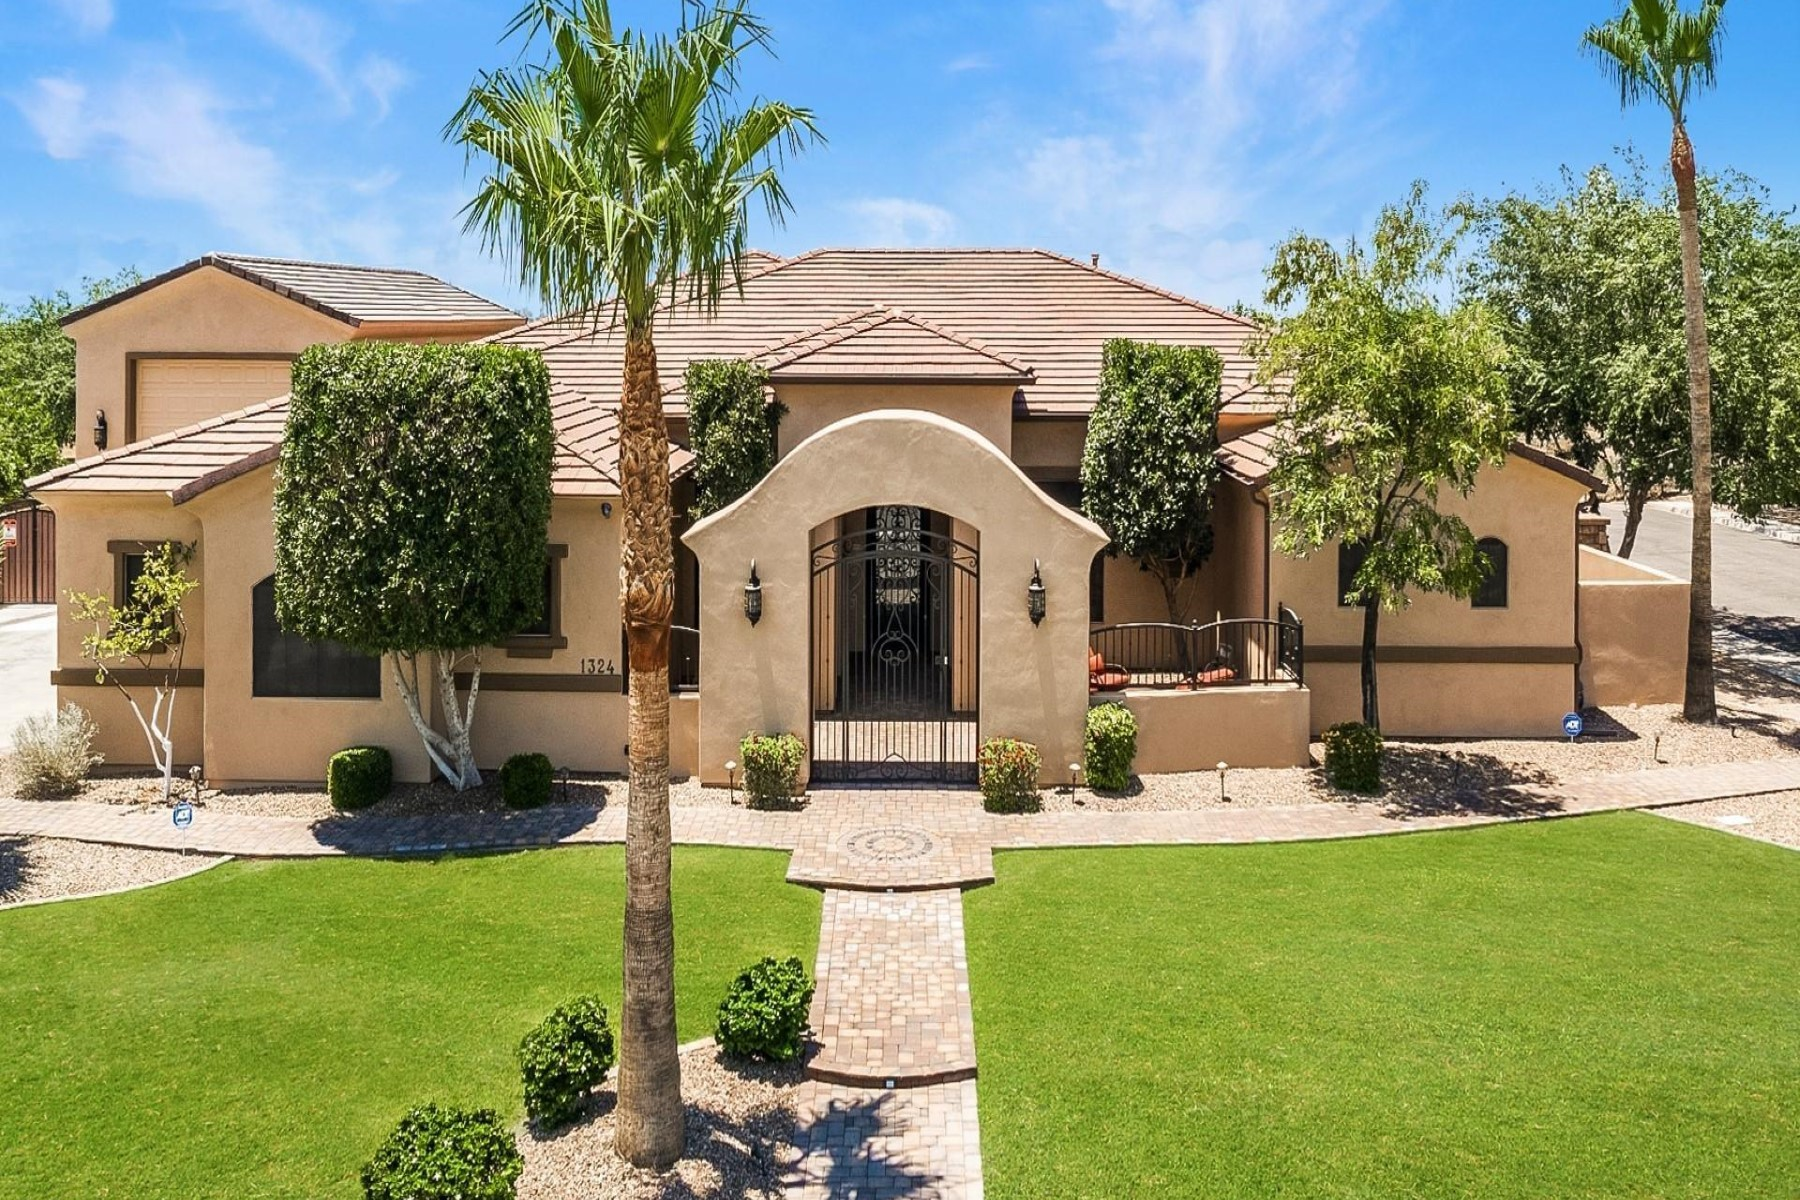 Single Family Homes for Active at Alta Mira Estates 1324 N 69TH PL Mesa, Arizona 85207 United States